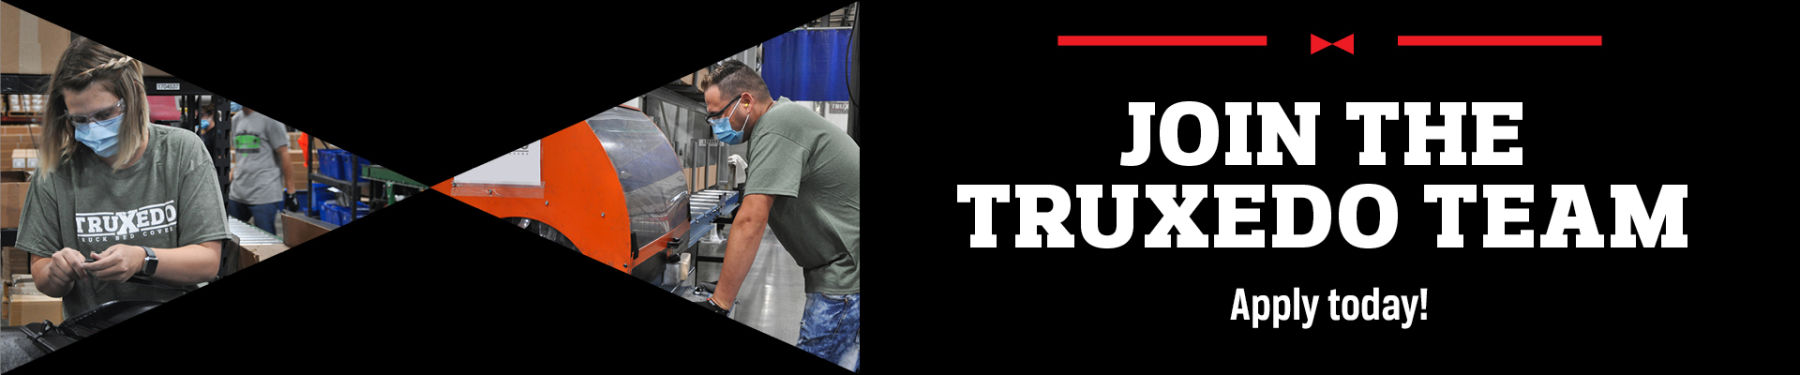 TruXedo Career Banner